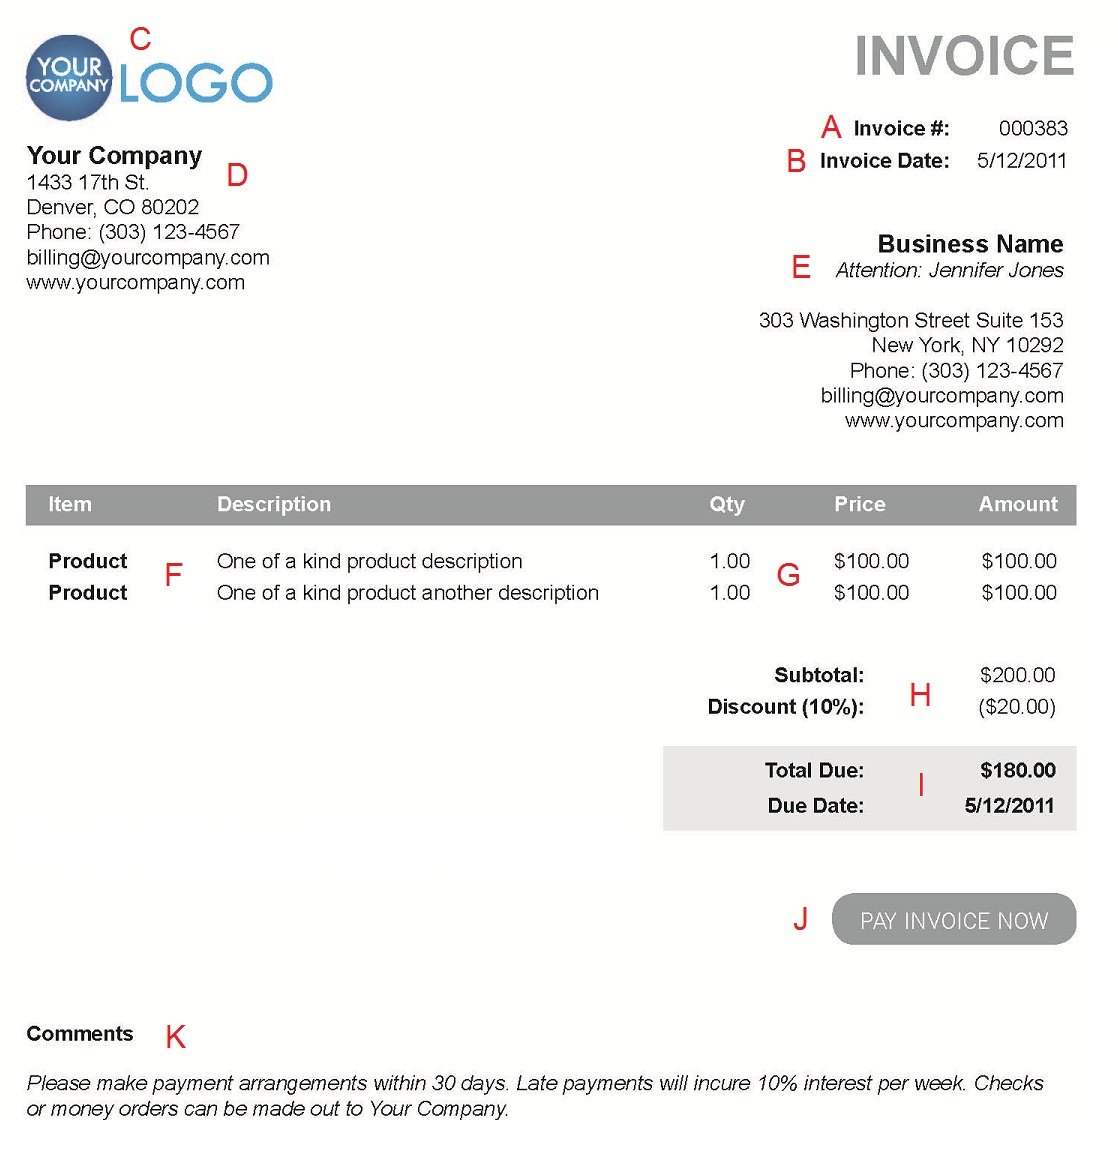 Barneybonesus  Personable The  Different Sections Of An Electronic Payment Invoice With Interesting A  With Captivating Epson Receipt Also Neat Receipts Customer Service In Addition Delaware Gross Receipts Tax Return And Online Receipt For Lic Premium As Well As Printable Receipts For Daycare Additionally Free Receipt Organizer Software From Paysimplecom With Barneybonesus  Interesting The  Different Sections Of An Electronic Payment Invoice With Captivating A  And Personable Epson Receipt Also Neat Receipts Customer Service In Addition Delaware Gross Receipts Tax Return From Paysimplecom